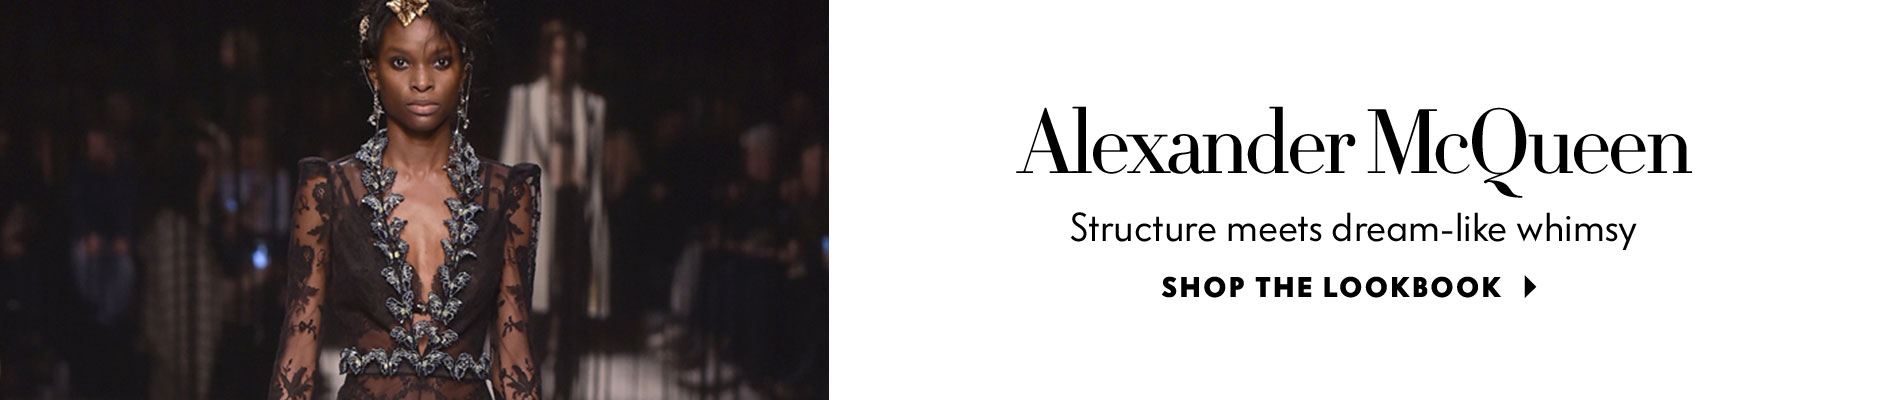 Alexander McQueen: Structure meets deamlike whimsy - Shop the Lookbook